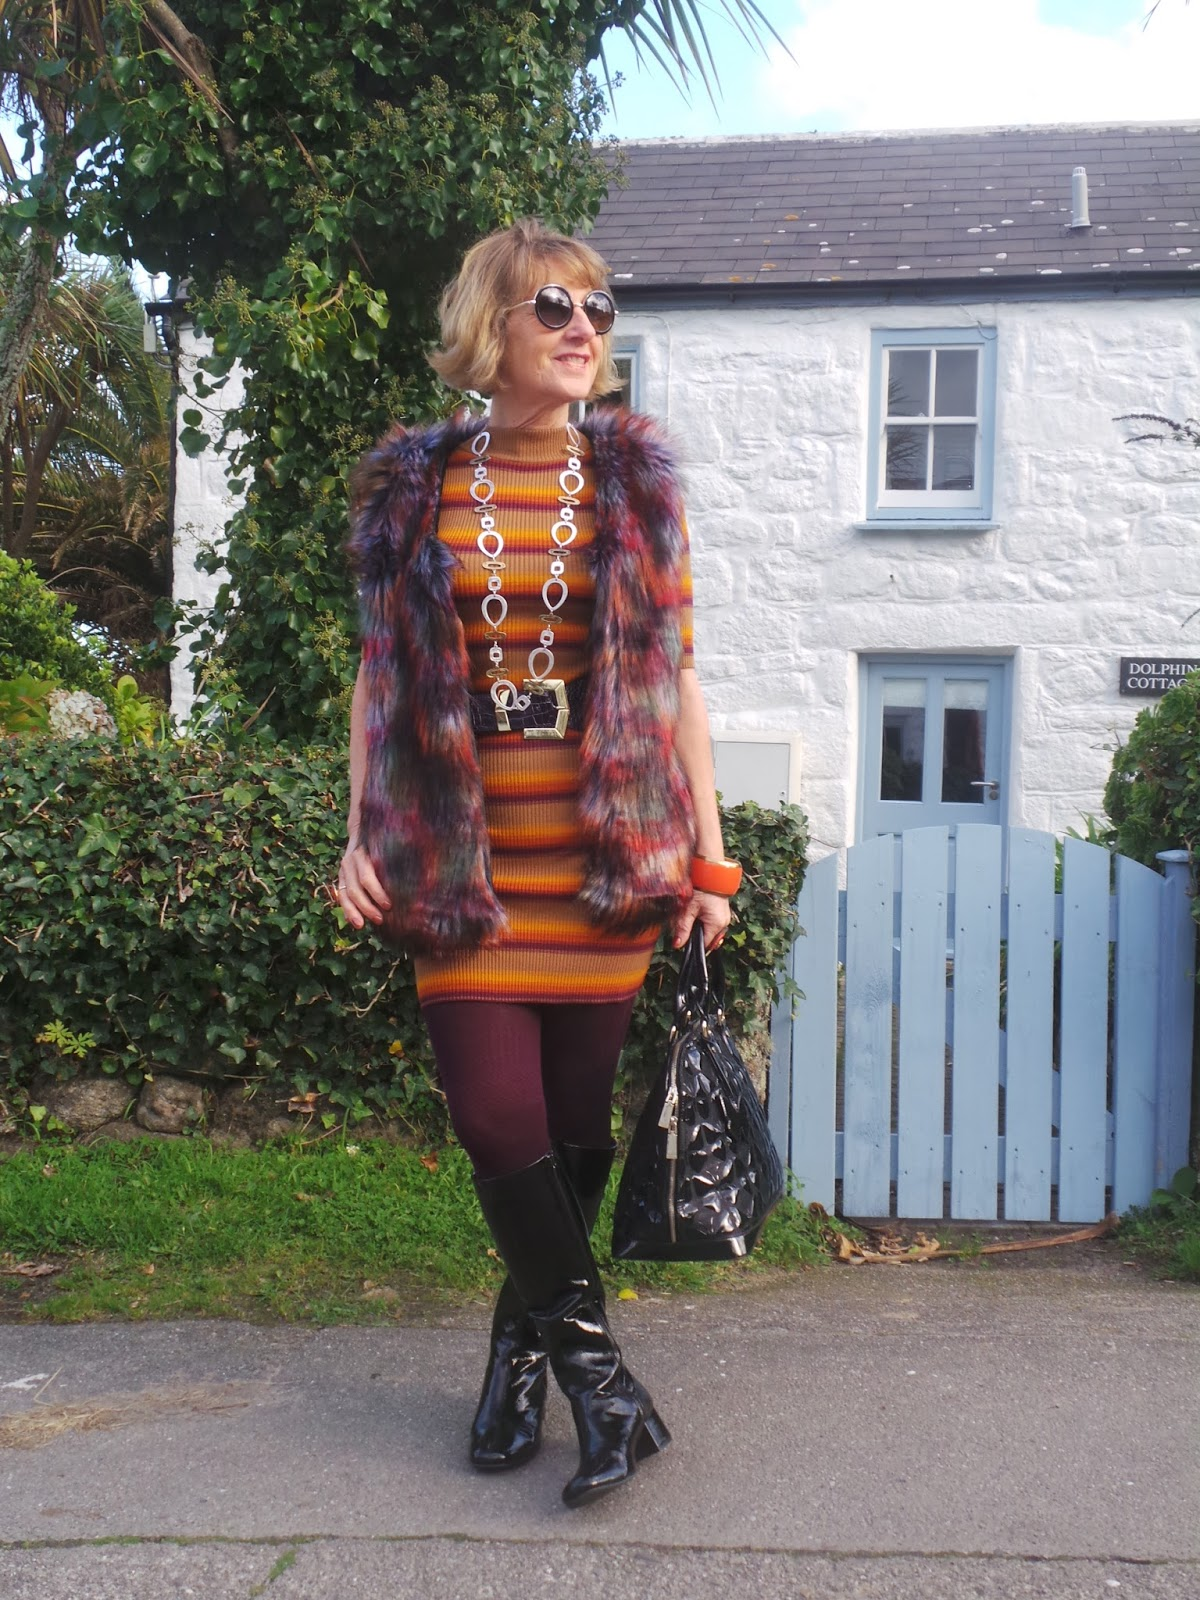 Image showing over 50s blogger Anna parkes from Annas Island Style in 60s influenced oufit with black patent boots